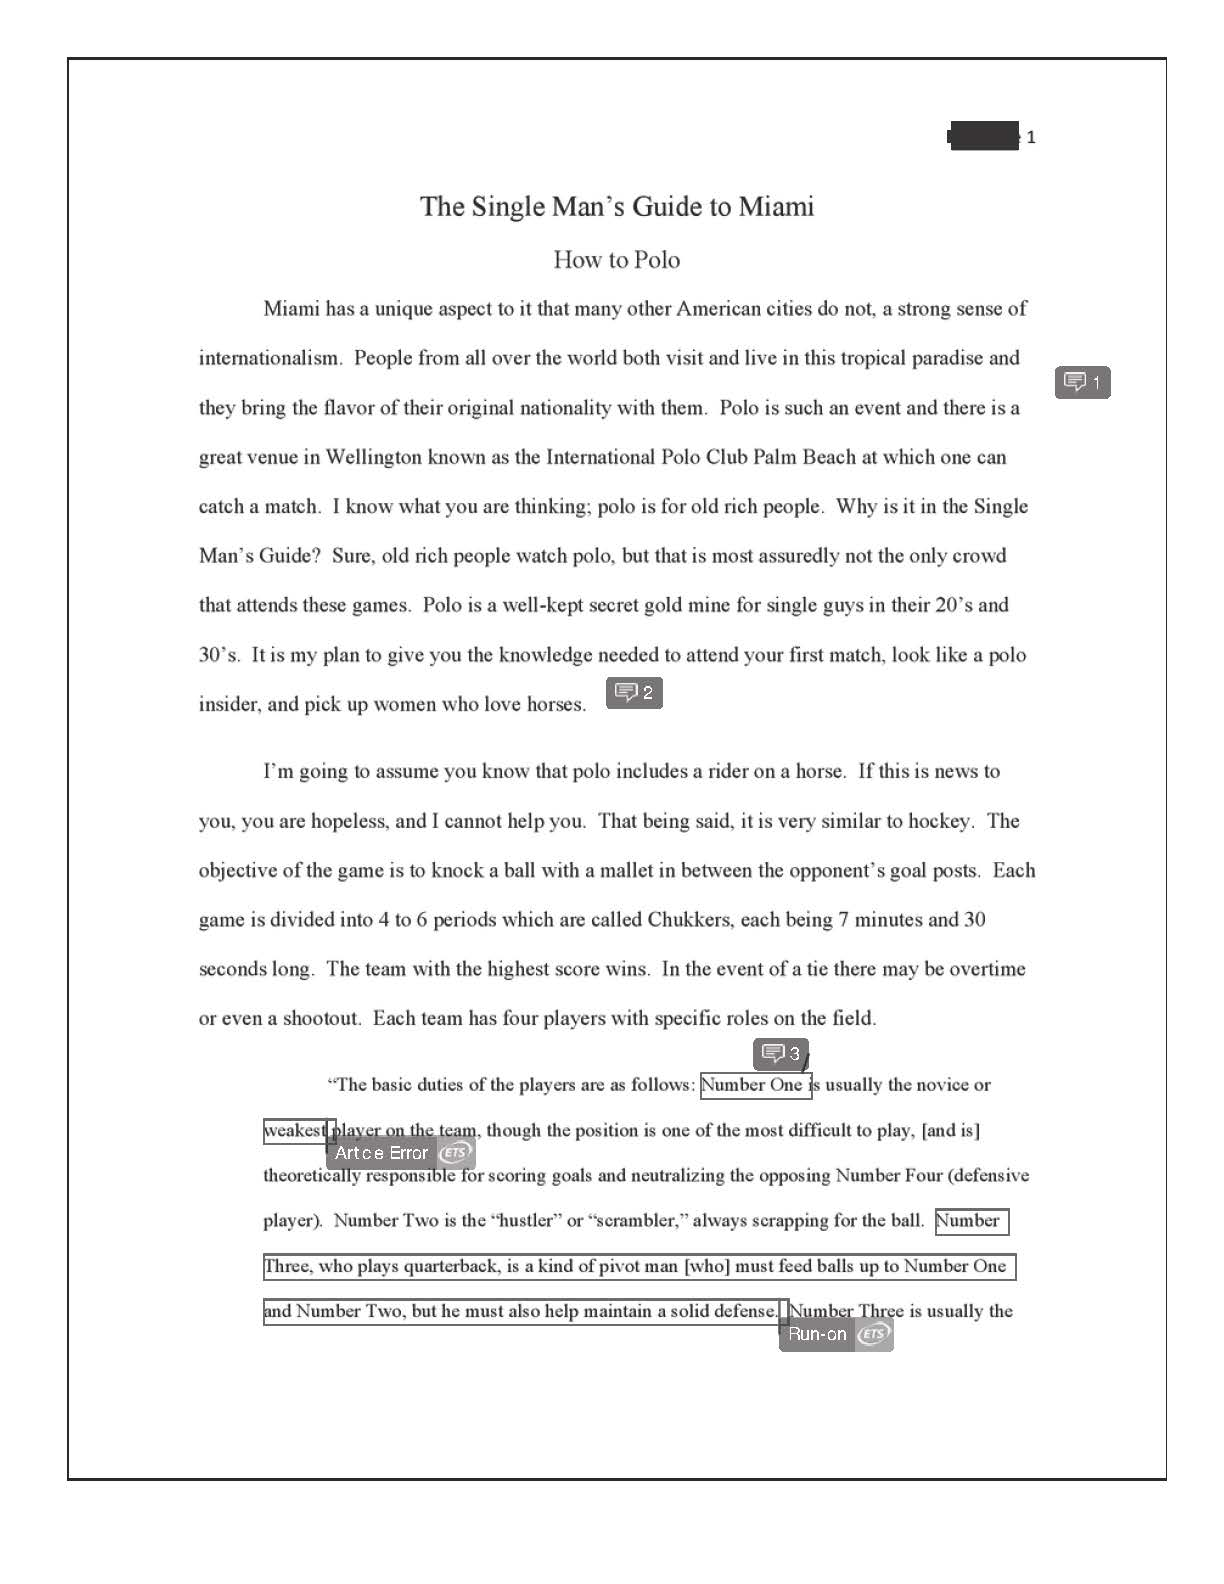 009 Informative Essay Final How To Polo Redacted Page 2 Example Introduction Frightening Examples Paragraph Full